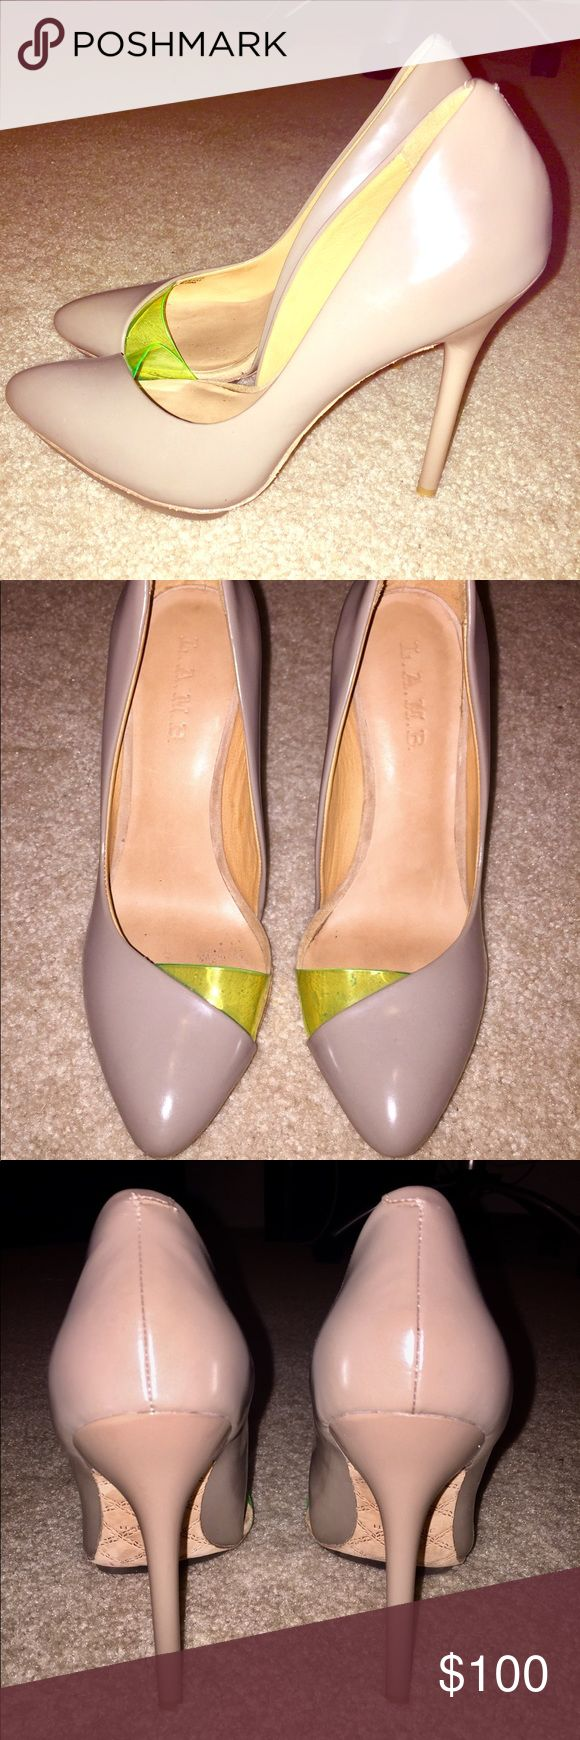 """L.A.M.B. """"Harlie"""" Nude and Neon Heels Perfectly impossible to let go of these bad girls, but my damn back won't allow this kind of arch! Bought brand new last year. No box but I'll ship them in a sexy dust bag. L.A.M.B. Shoes Heels"""